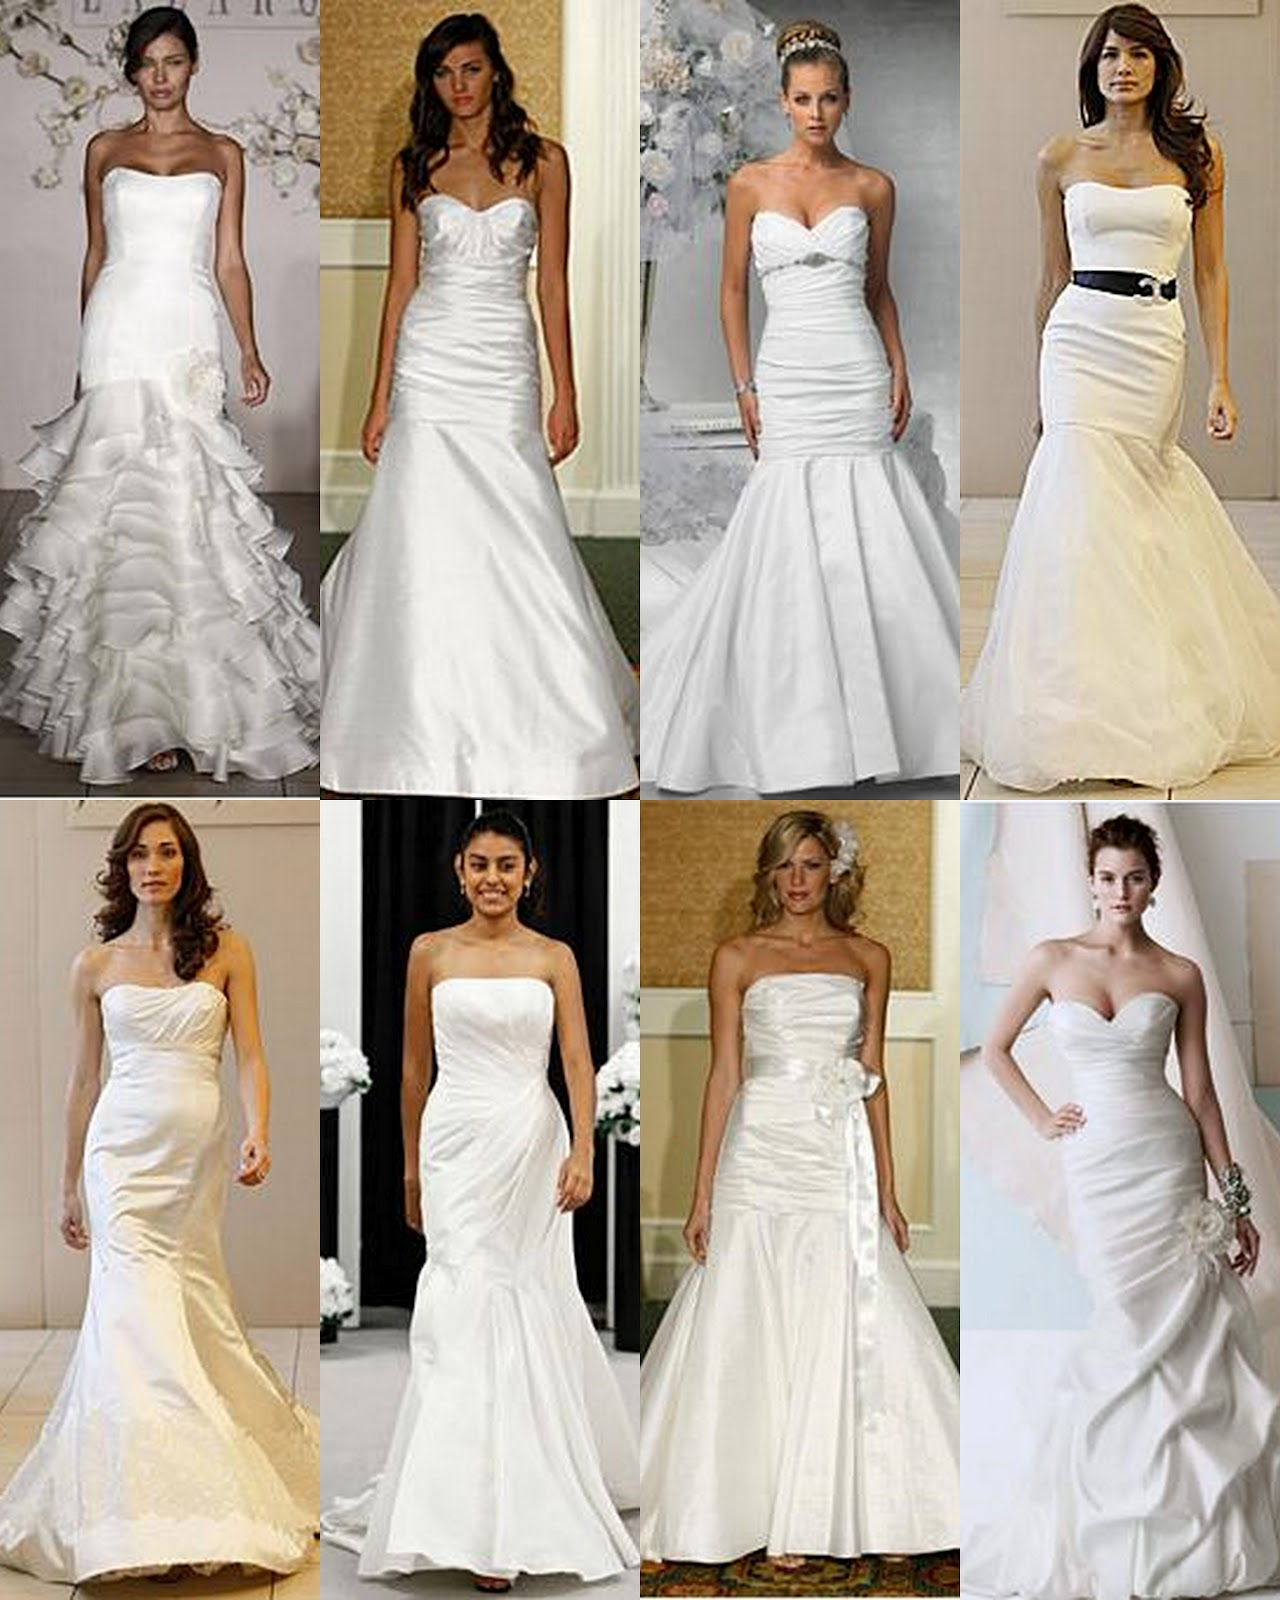 Wedding Dress Types: Types Of Wedding Dresses